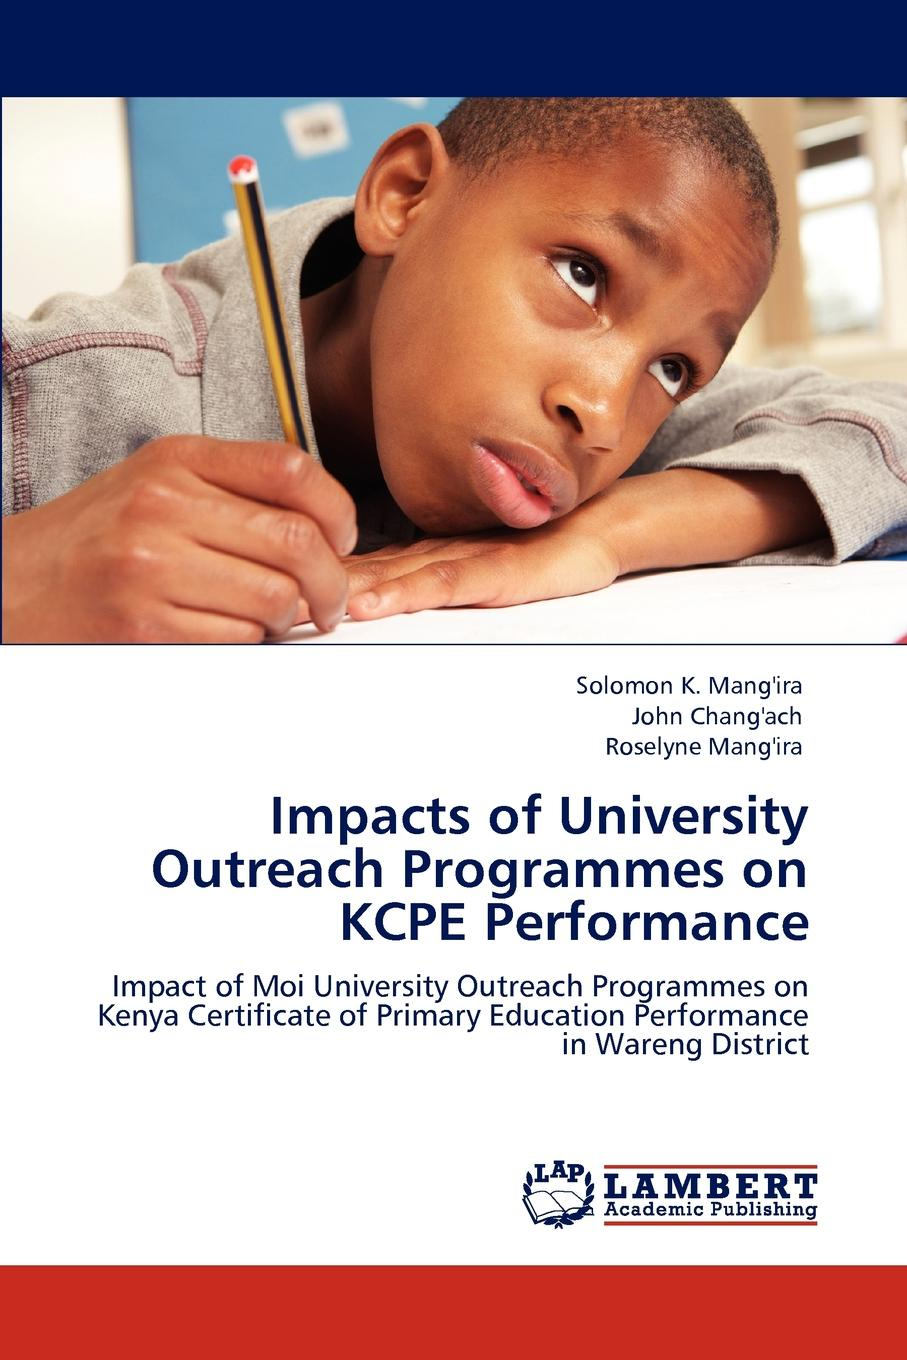 Solomon K. Mang'ira, John Chang'ach, Roselyne Mang'ira Impacts of University Outreach Programmes on Kcpe Performance amjad reba perception about ngo contribution towards education